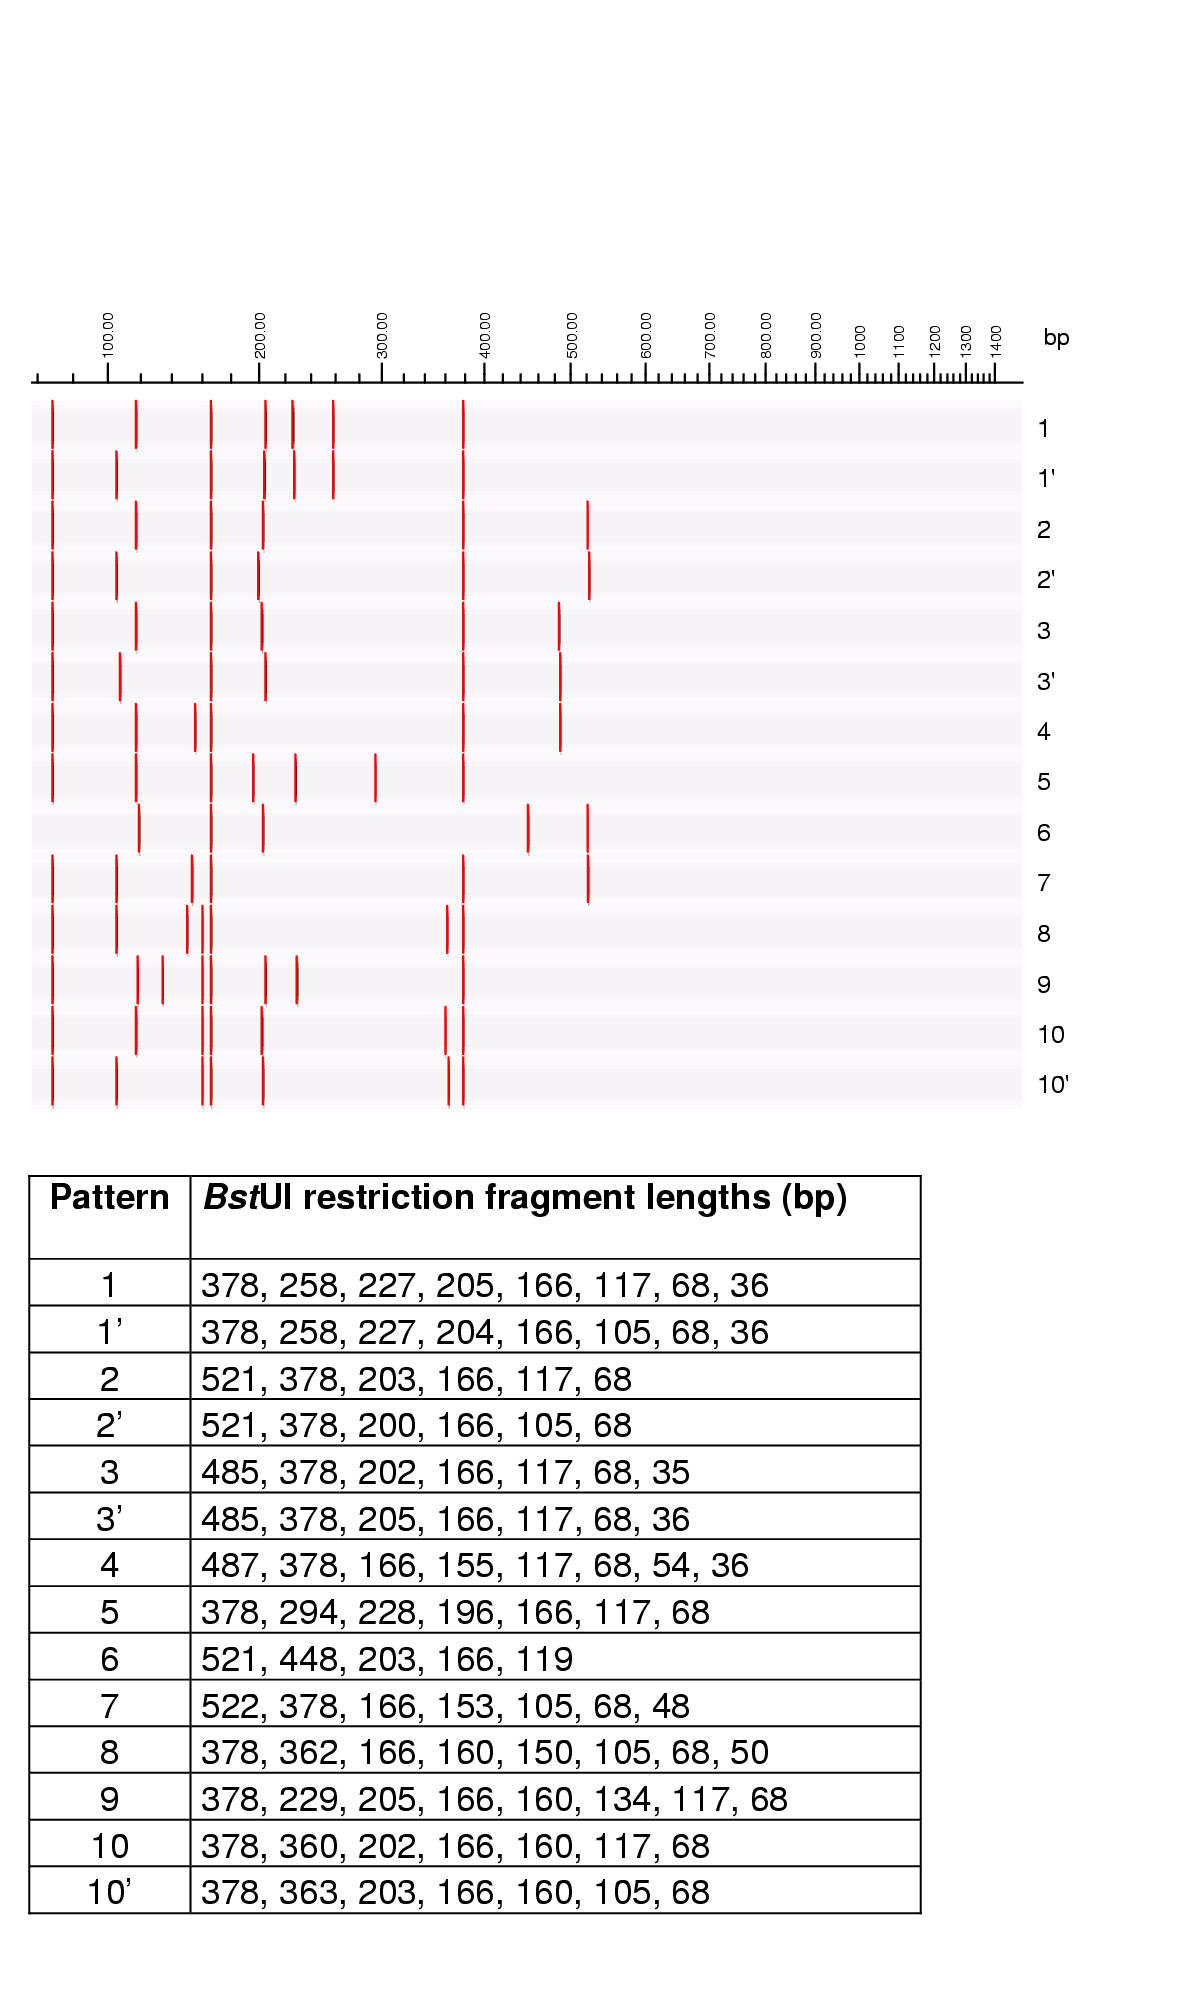 https://static-content.springer.com/image/art%3A10.1186%2F1471-2180-2-4/MediaObjects/12866_2001_Article_38_Fig7_HTML.jpg